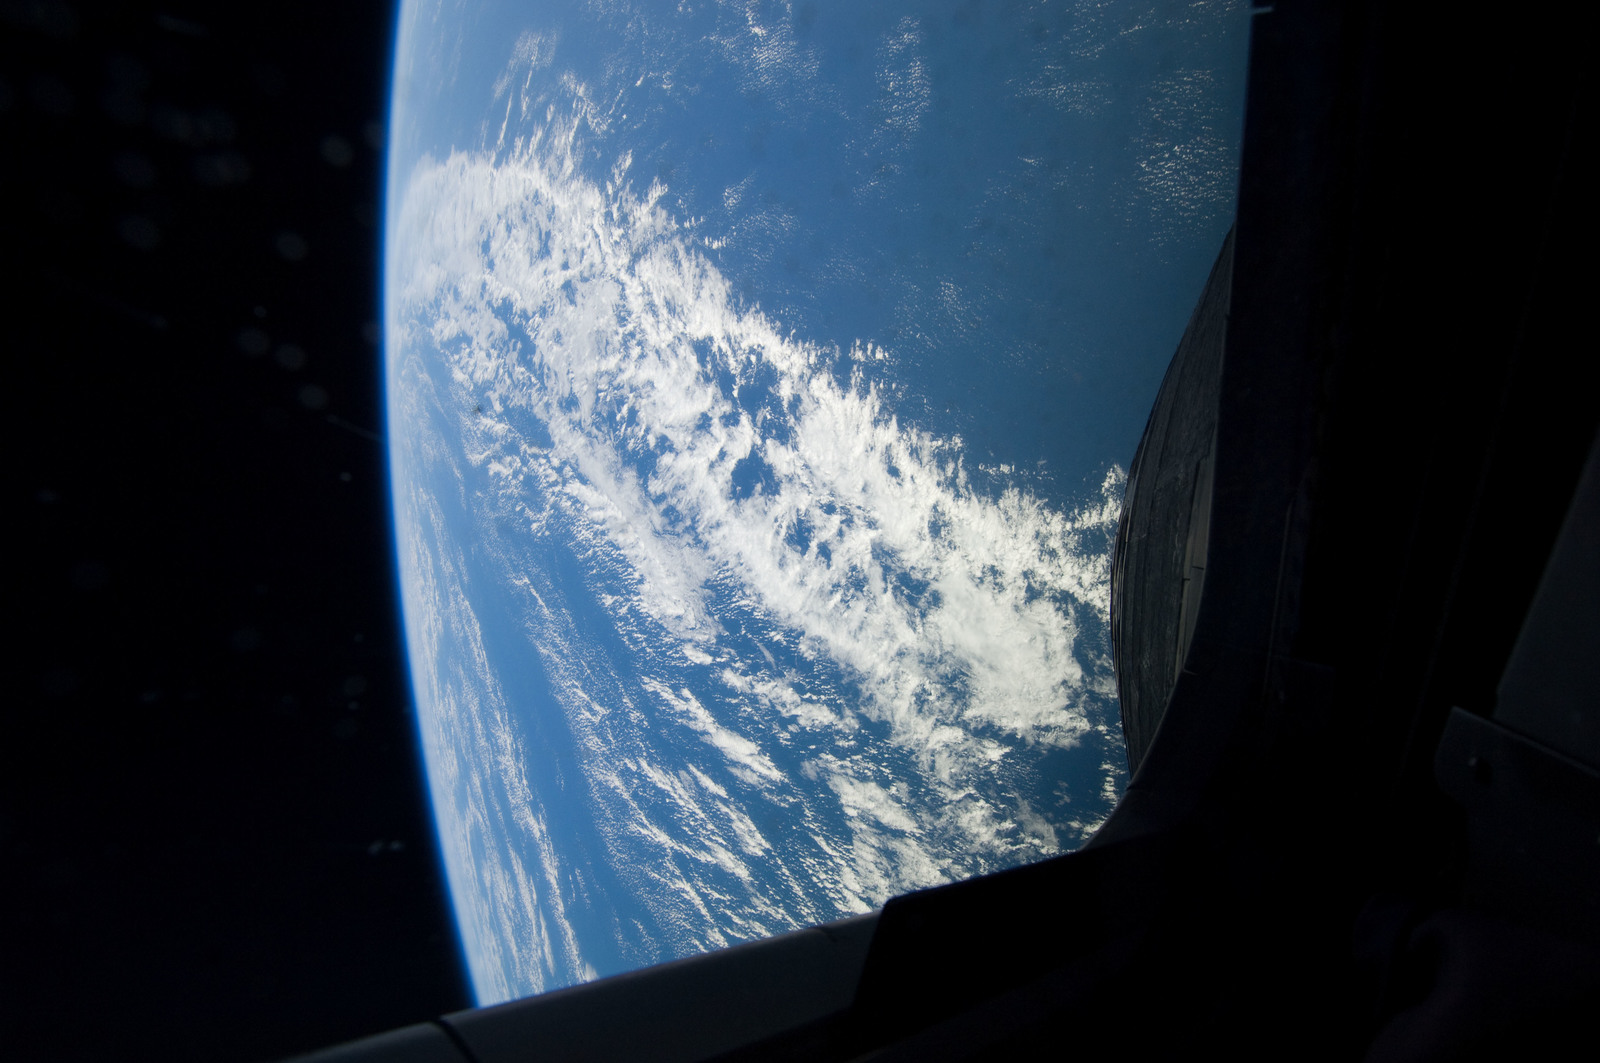 s133E006946 - STS-133 - Earth Observation taken by the STS-133 crew